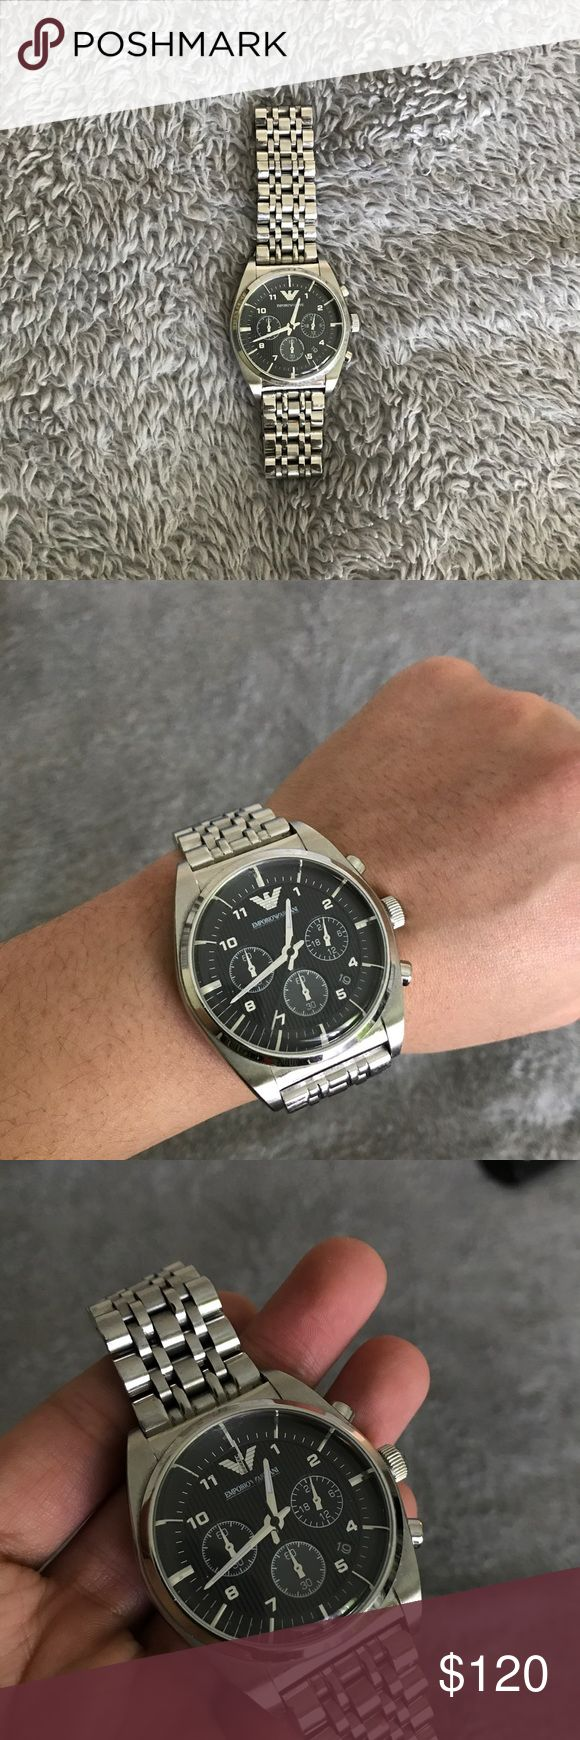 Emporio Armani Watch Emporio Armani Watch. Original price $235. Gently used Emporio Armani Accessories Watches